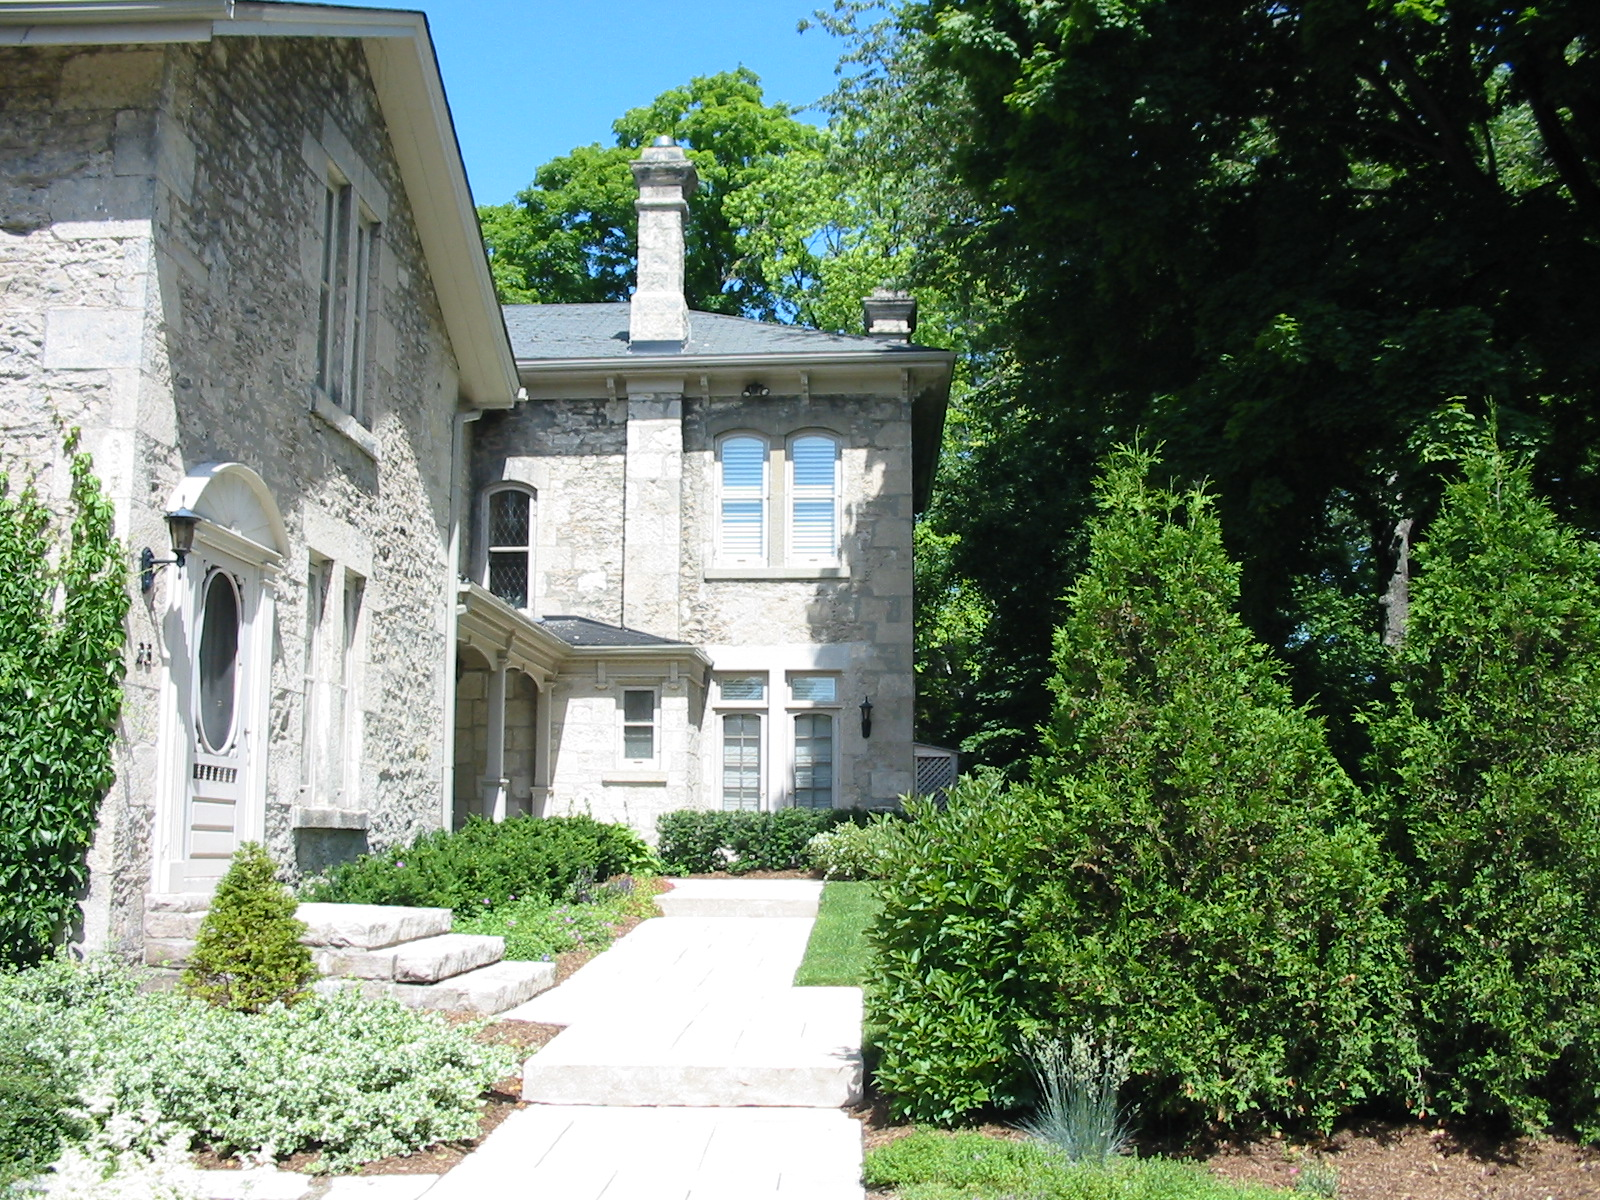 Everyday entrance to a stone house in Guelph with natural stone steps